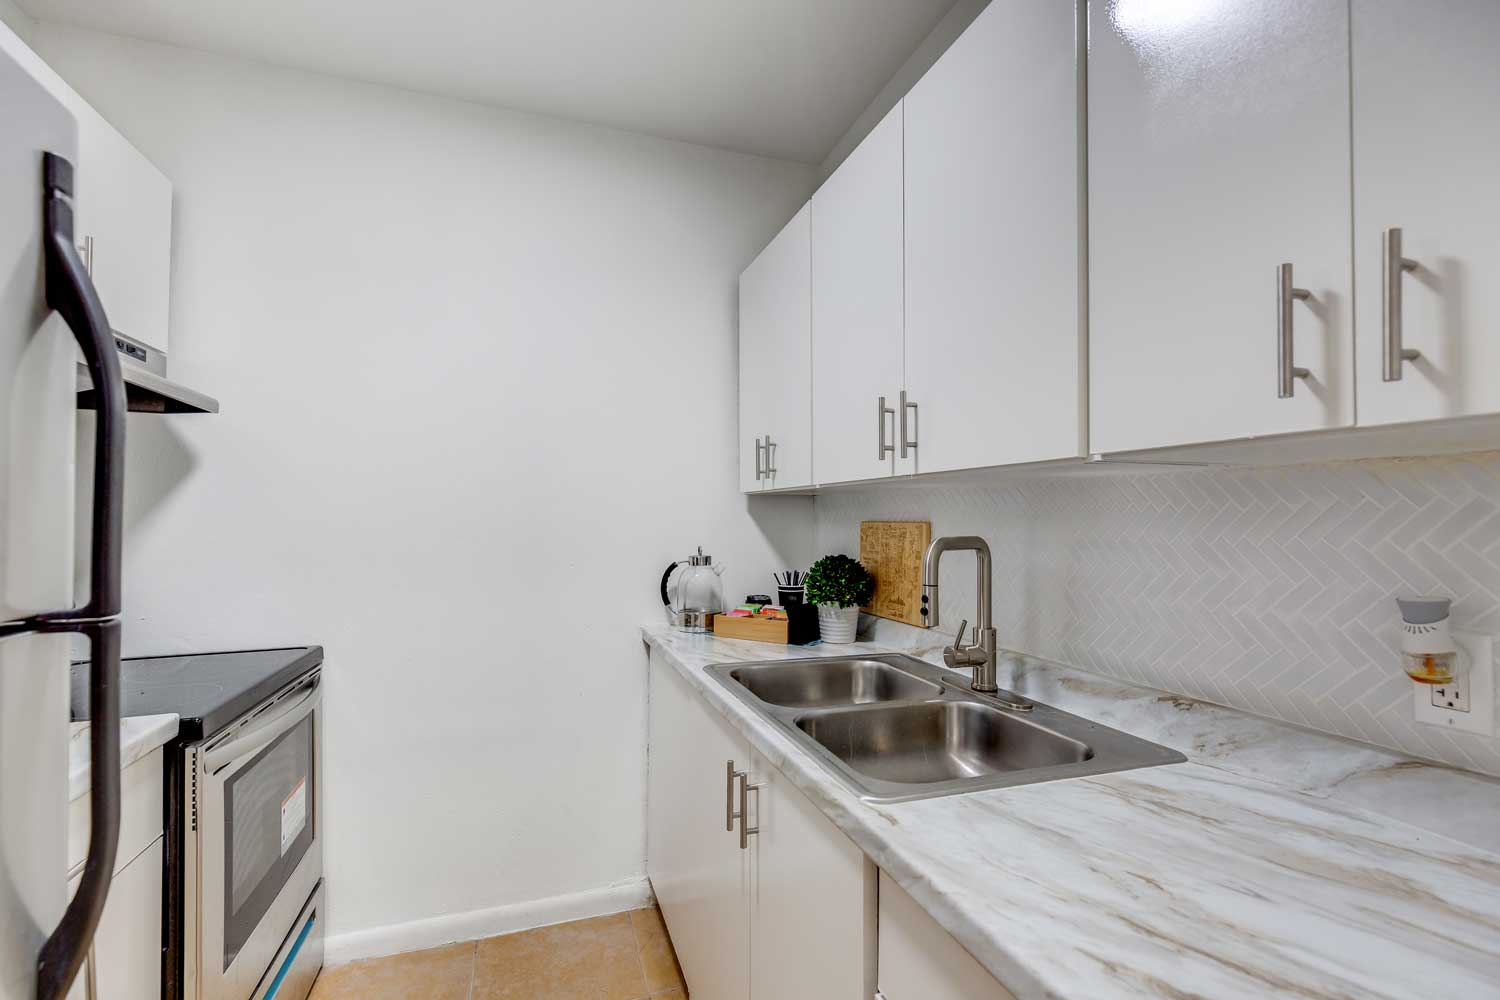 Stainless Steel Appliances at New Castle Lake in Miami, FL